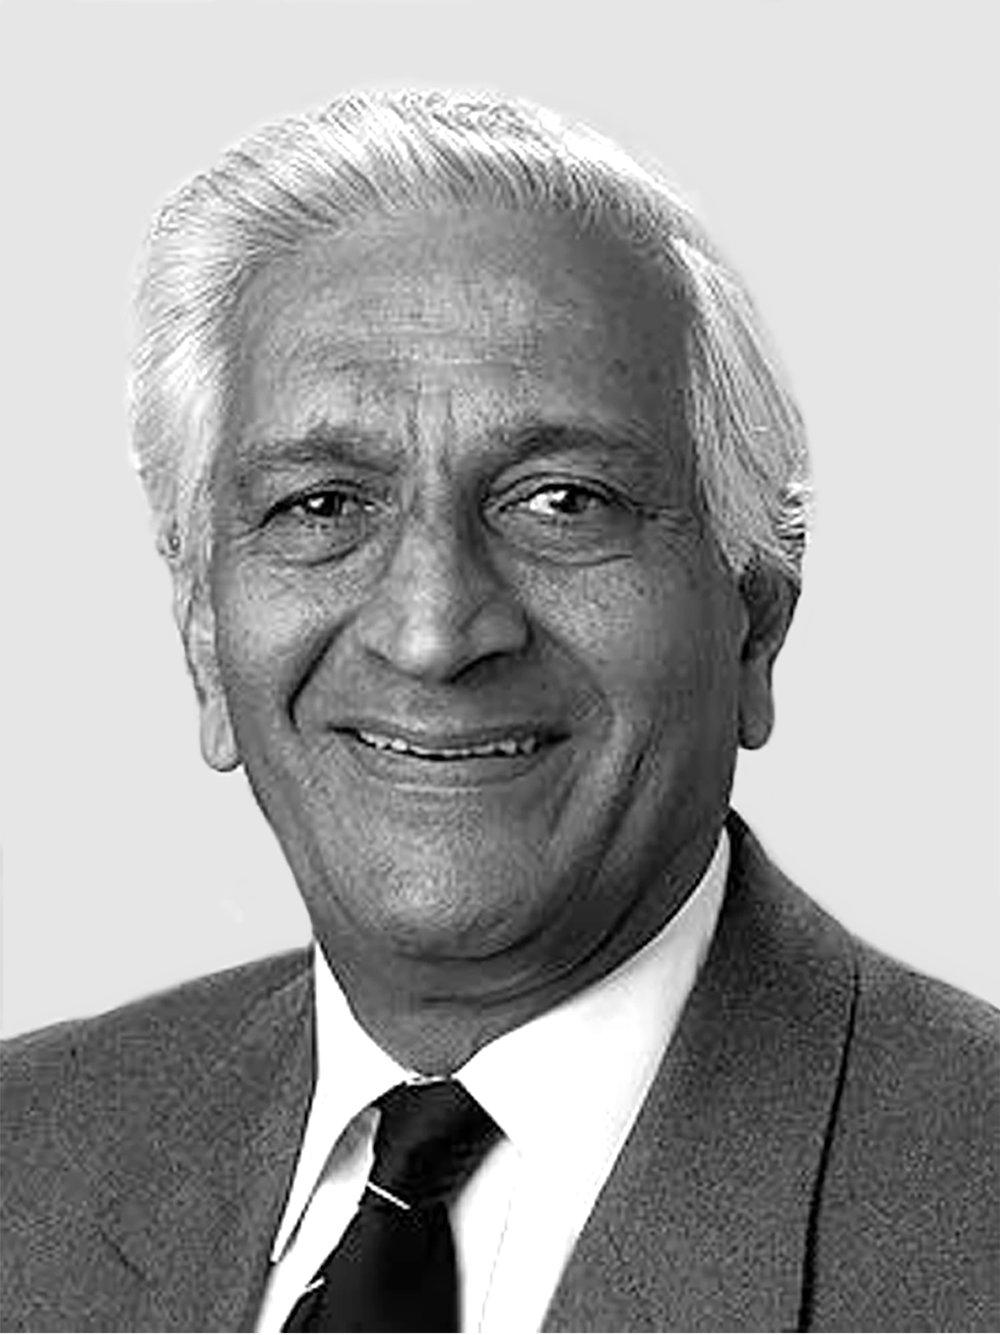 Lord Naren Patel KT   Lord Patel KT is Honorary Professor at the University of Dundee, Ninewells Hospital. He is Fellow of the Royal College of Obstetricians and Gynaecologists, the Academy of Medical Sciences and The Royal Society of Edinburgh. He holds the Honorary Doctorate in Science, Medicine and Law from the Universities of Napier; Edinburgh; Aberdeen; St. Andrews; Dundee; Athens and Stellenbosch South Africa. He holds a further 18 Honorary Fellowships of universities and national organisations worldwide in surgery, anaesthesia, public health, general practice, psychiatry and obstetrics and gynaecology.  He was awarded a Knighthood in the Queens Birthday Honours List in 1997 and was made a life Peer with the title of Baron Patel of Dunkeld in Perth and Kinross in the Queens New Years Honours List in 1999.  His academic and clinical interests are in the field of high-risk obstetrics. He has published widely on the subjects of preterm labour, fetal growth retardation, obstetric epidemiology etc. His current interests are in health quality and standards of clinical care and patient safety.